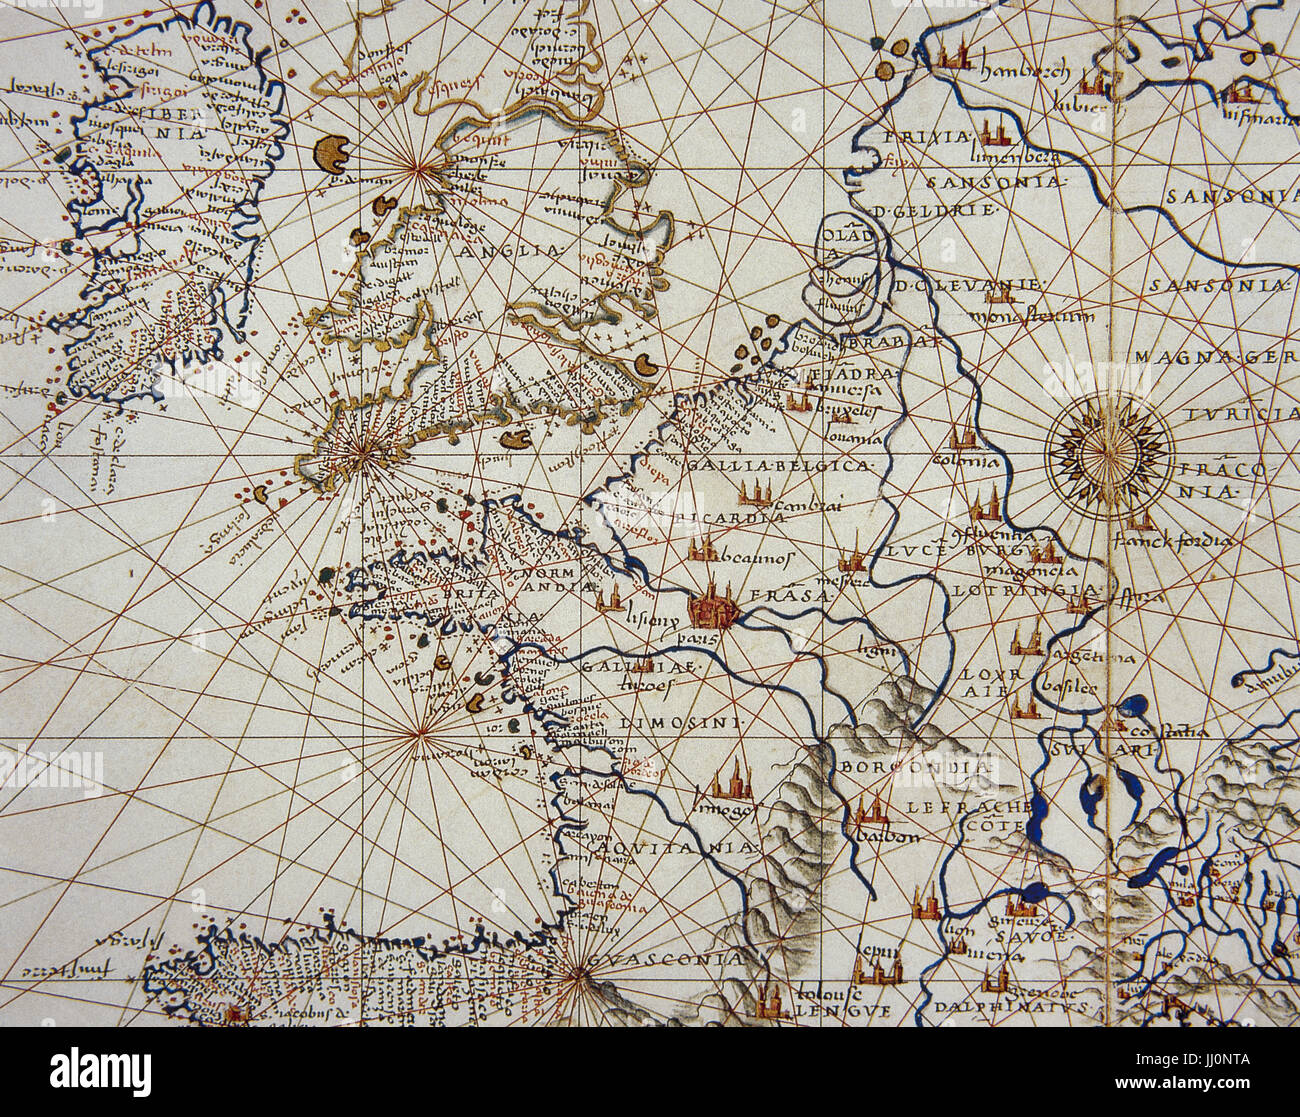 15th Century Map Of Europe.Map Europe 15th Century Stock Photos Map Europe 15th Century Stock